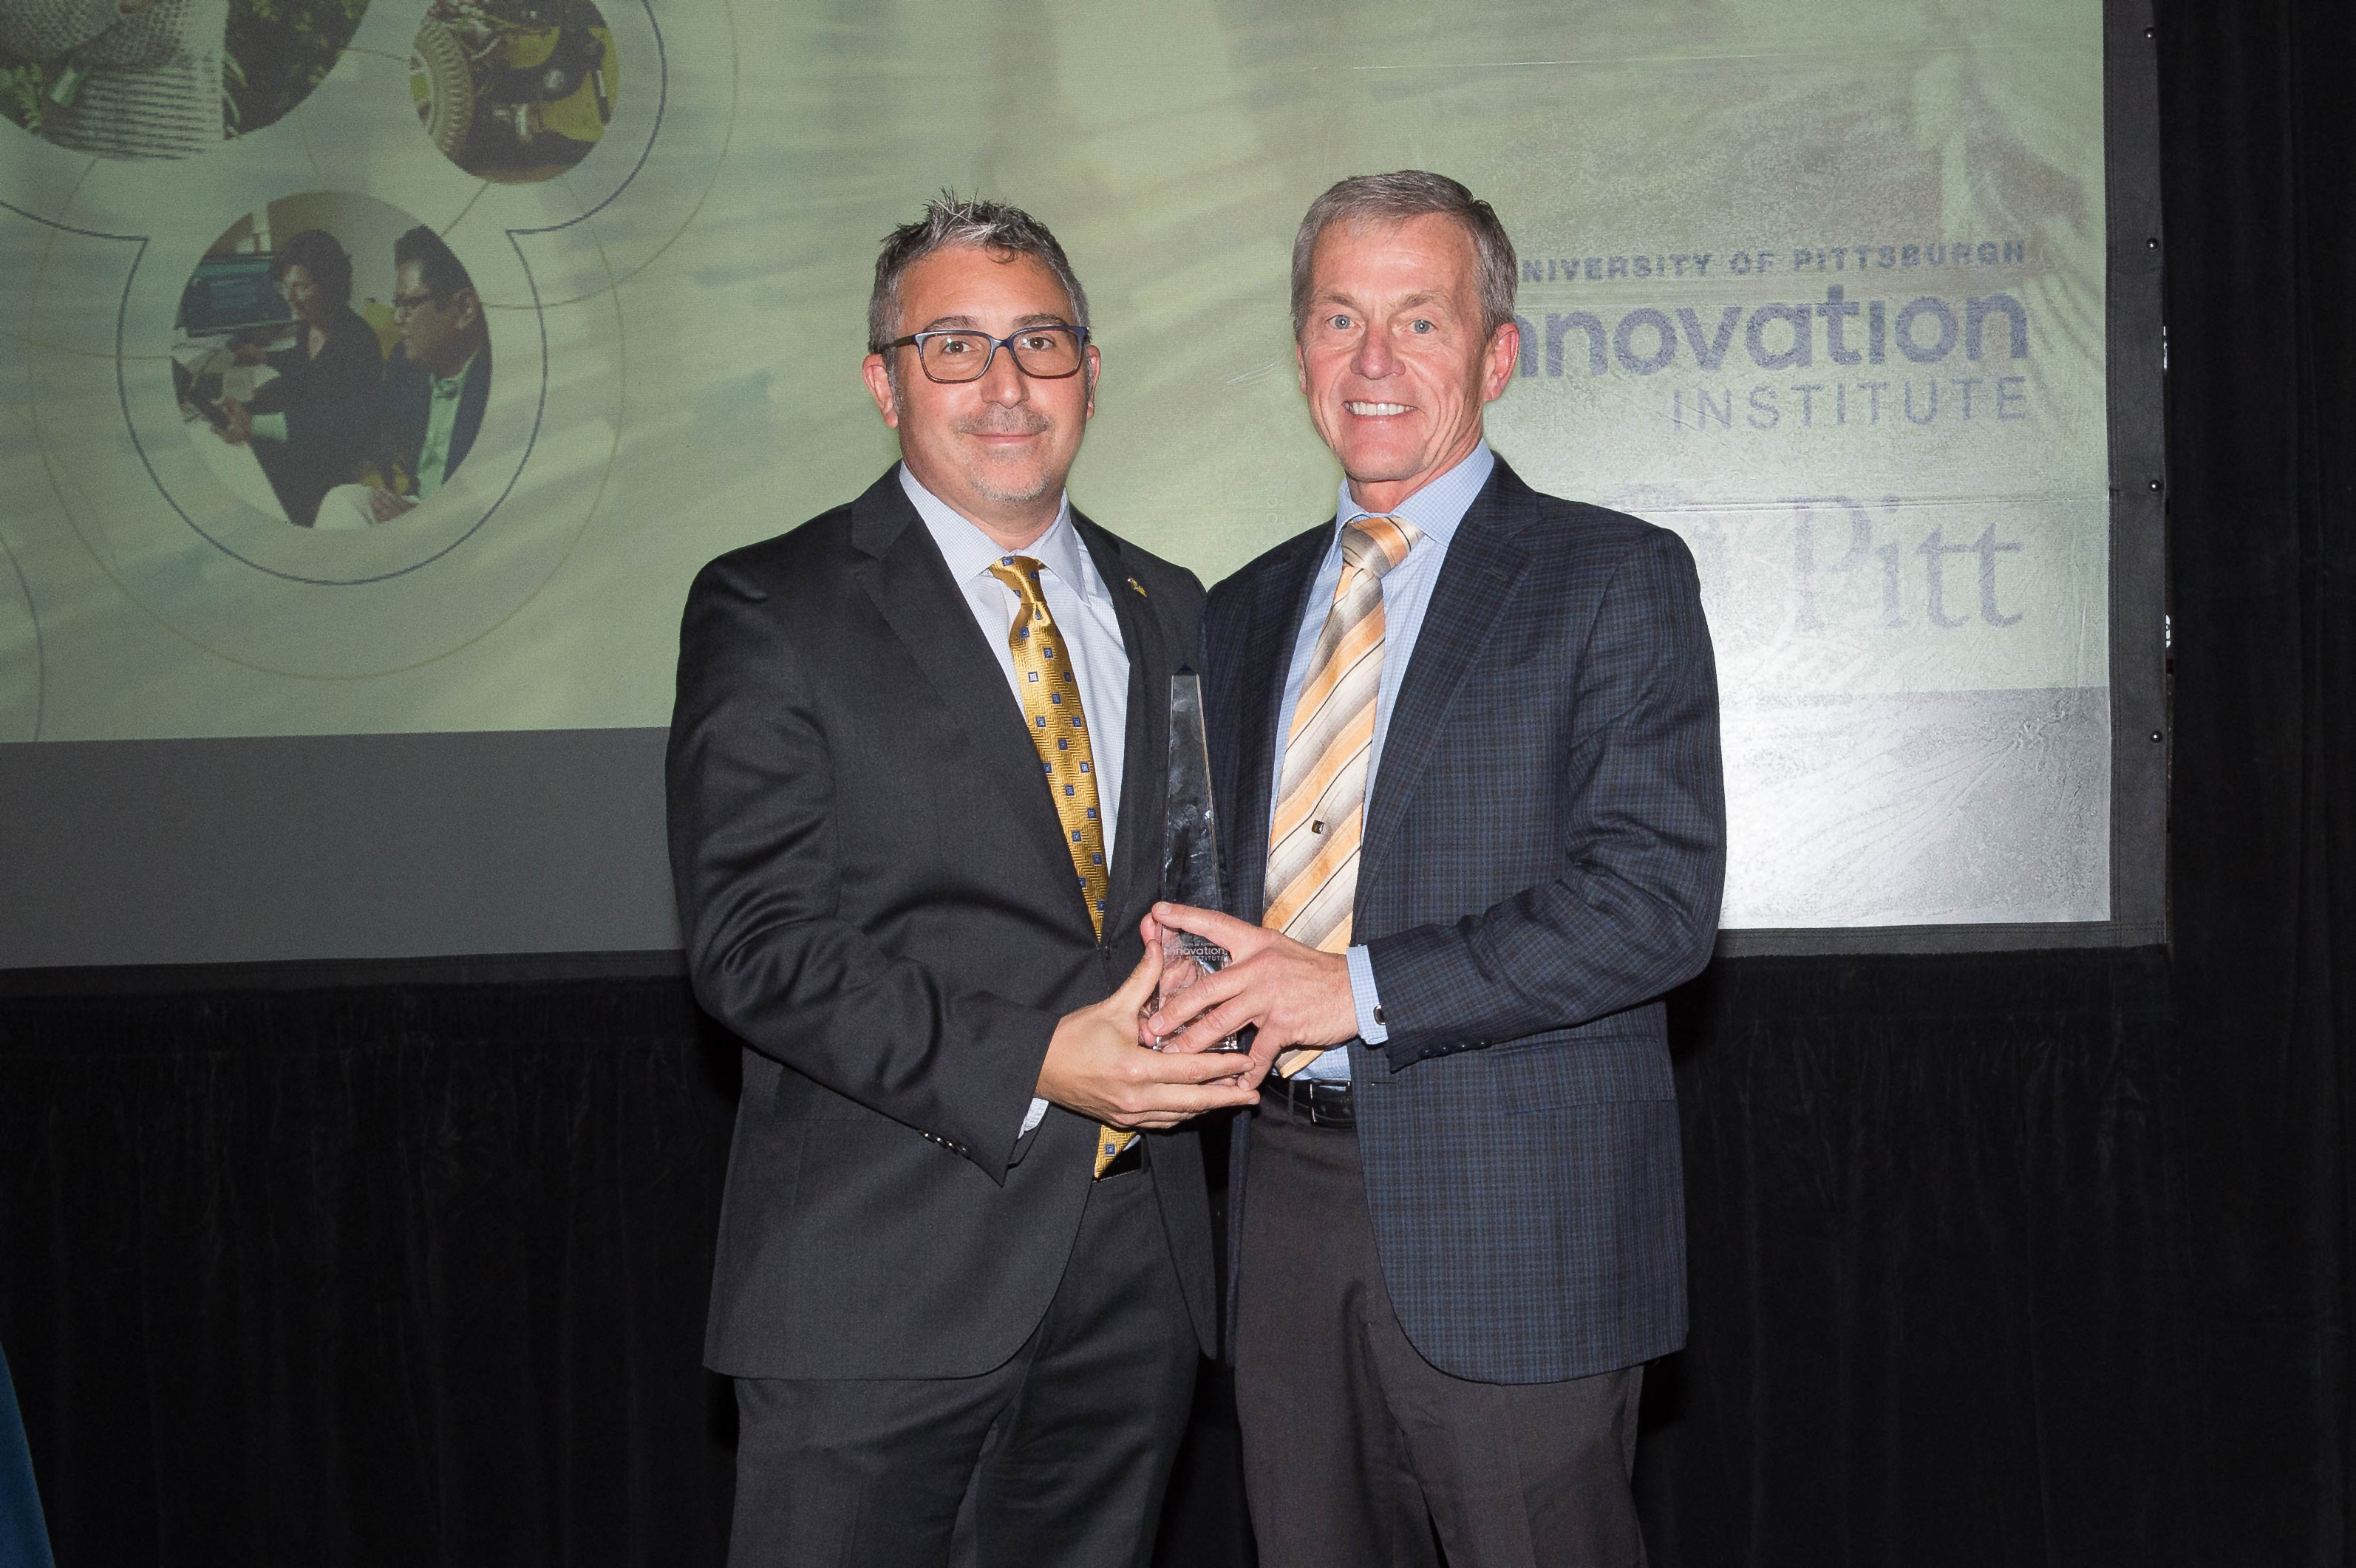 Dr. Stephen Badylak, Professor of Surgery, Deputy Director of the McGowan Institute for Regenerative Medicine, was presented the Marlin Mickle Outstanding Innovator of the Year Award at Pitt's 2018 Celebration of Innovation.